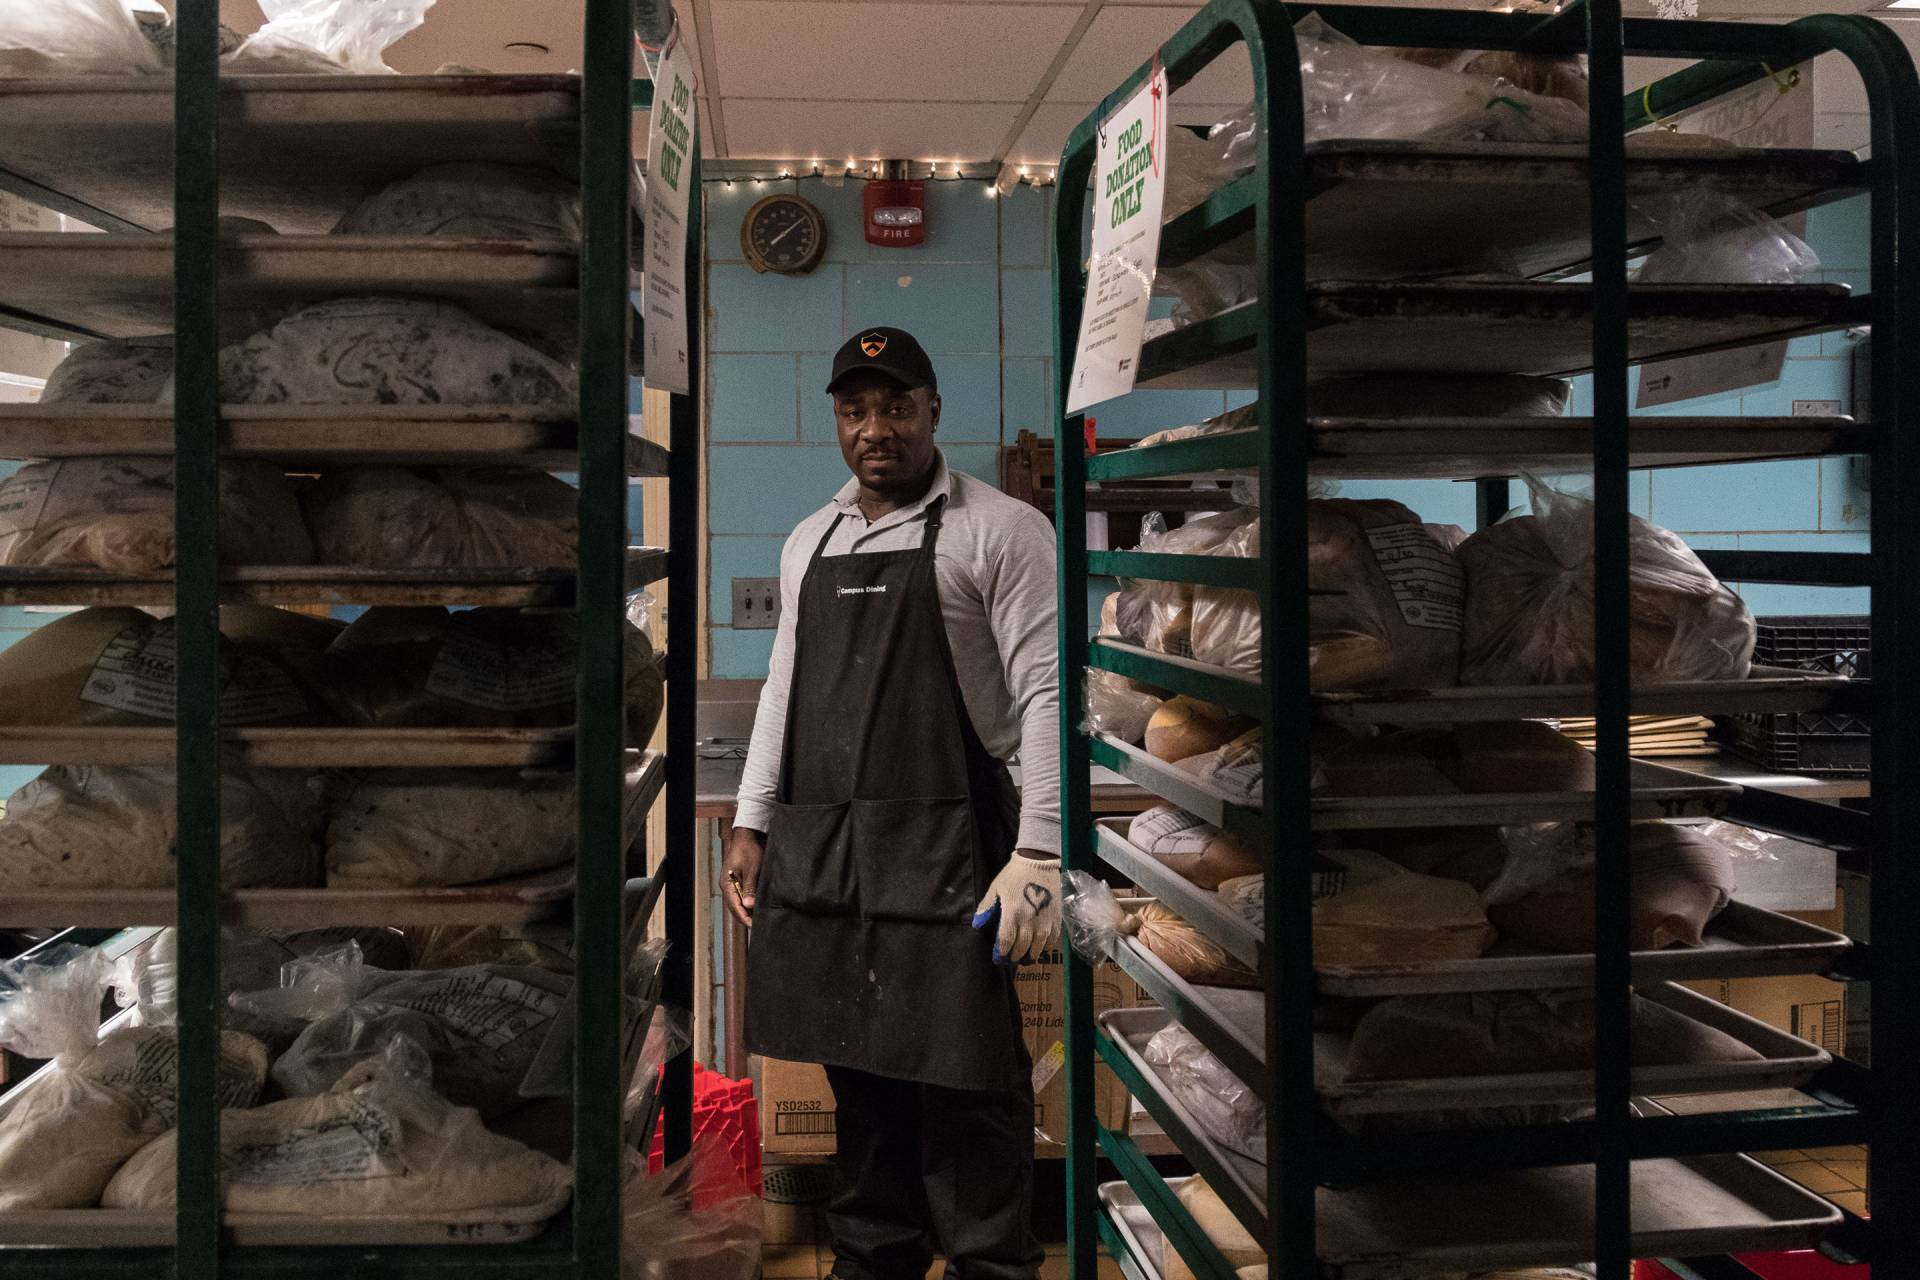 Food service storekeeper Odman Jean Denis standing in between two racks of bread